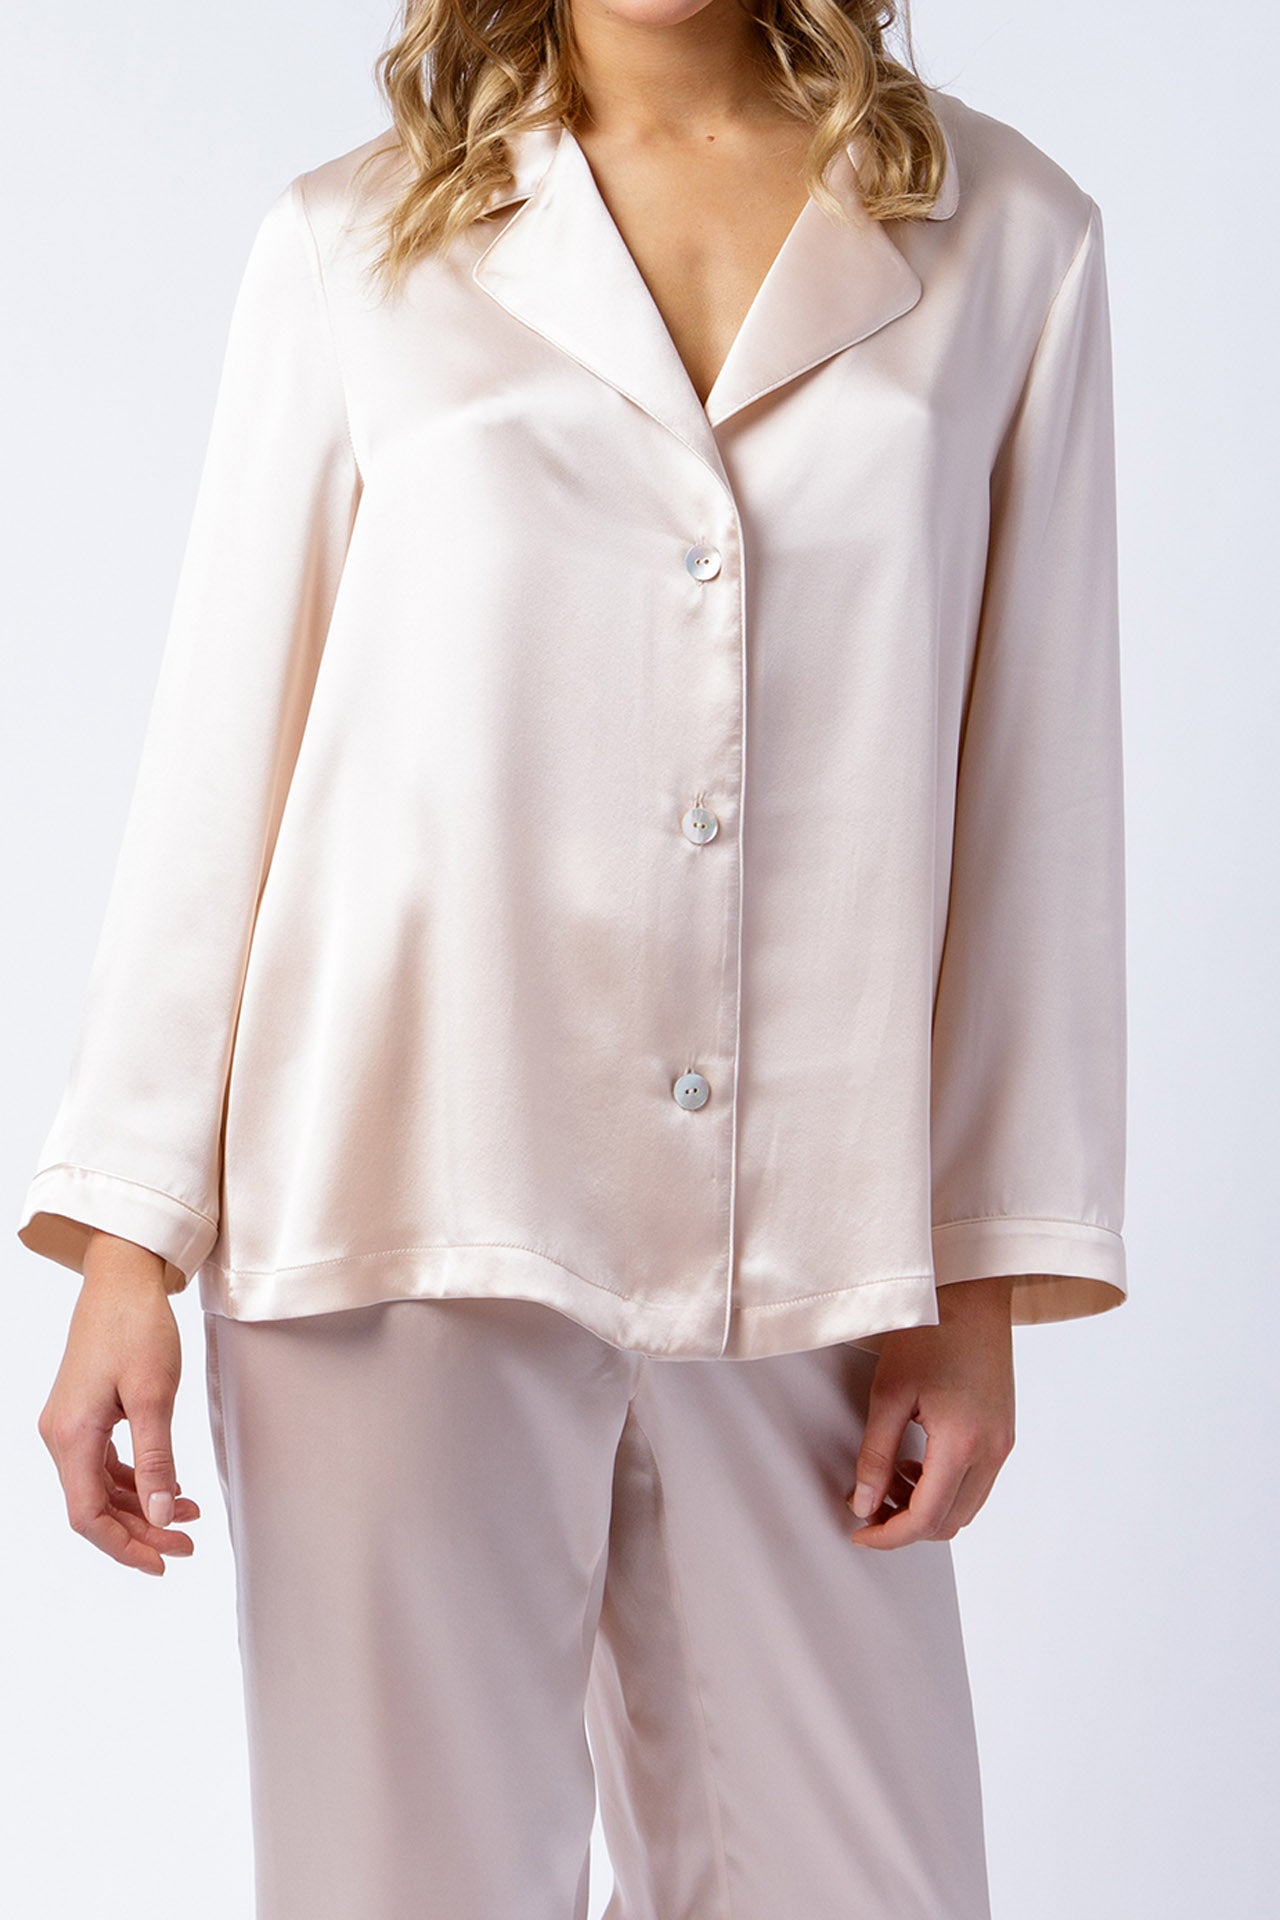 Ann shirt in blush, front